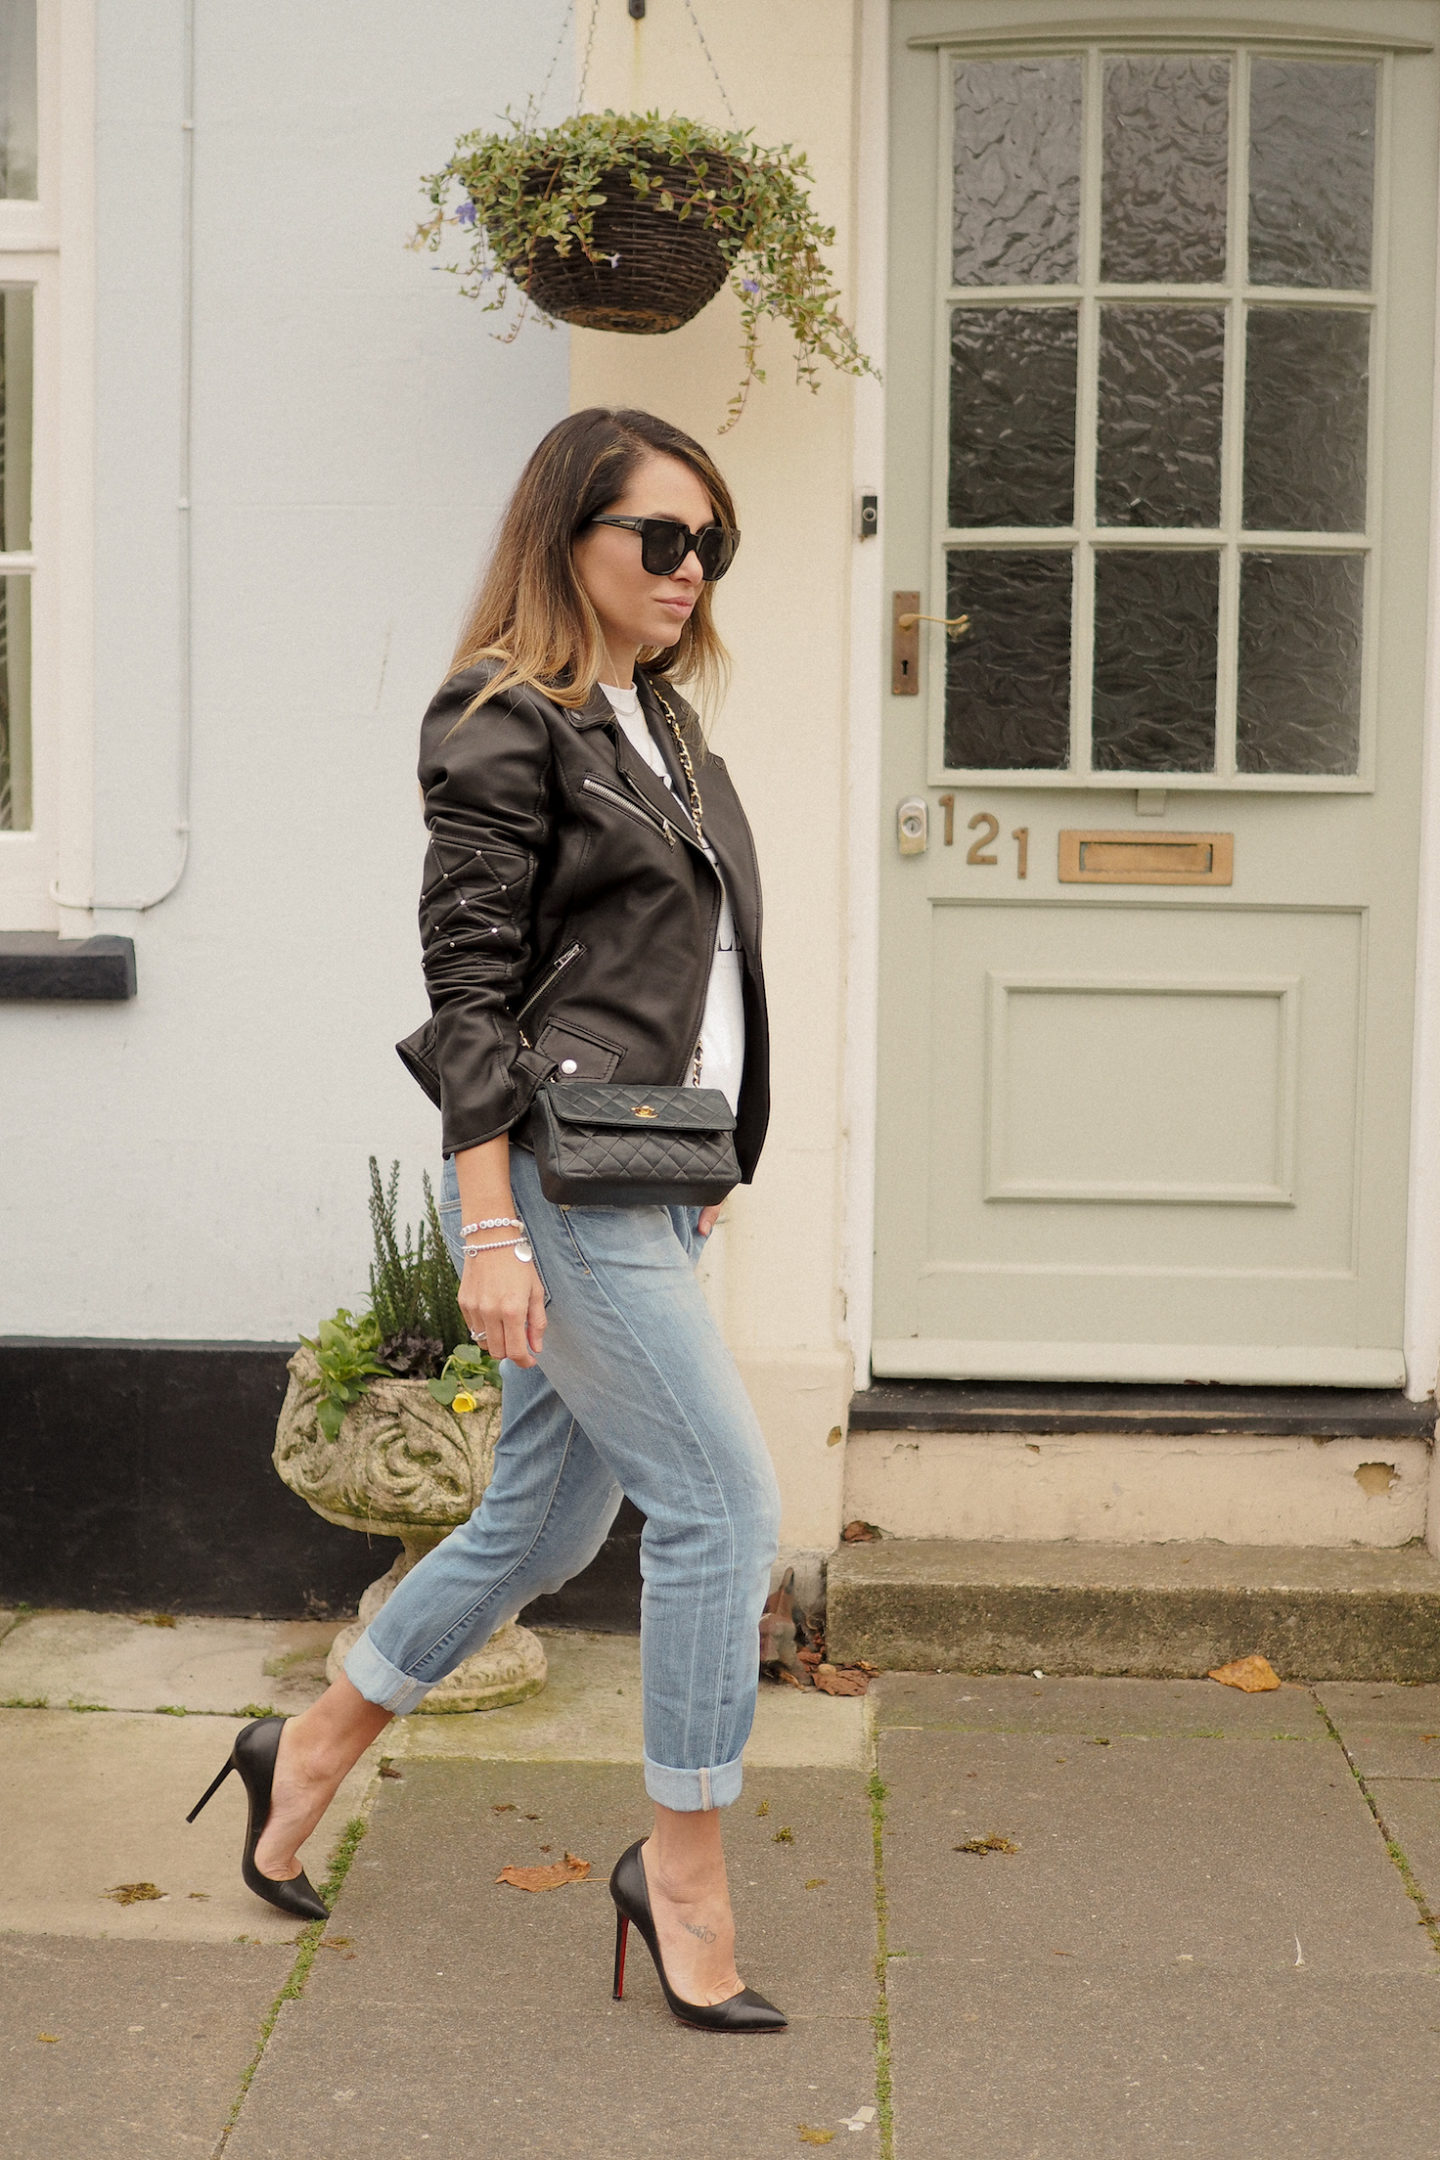 HOW TO STYLE BIKER JACKET